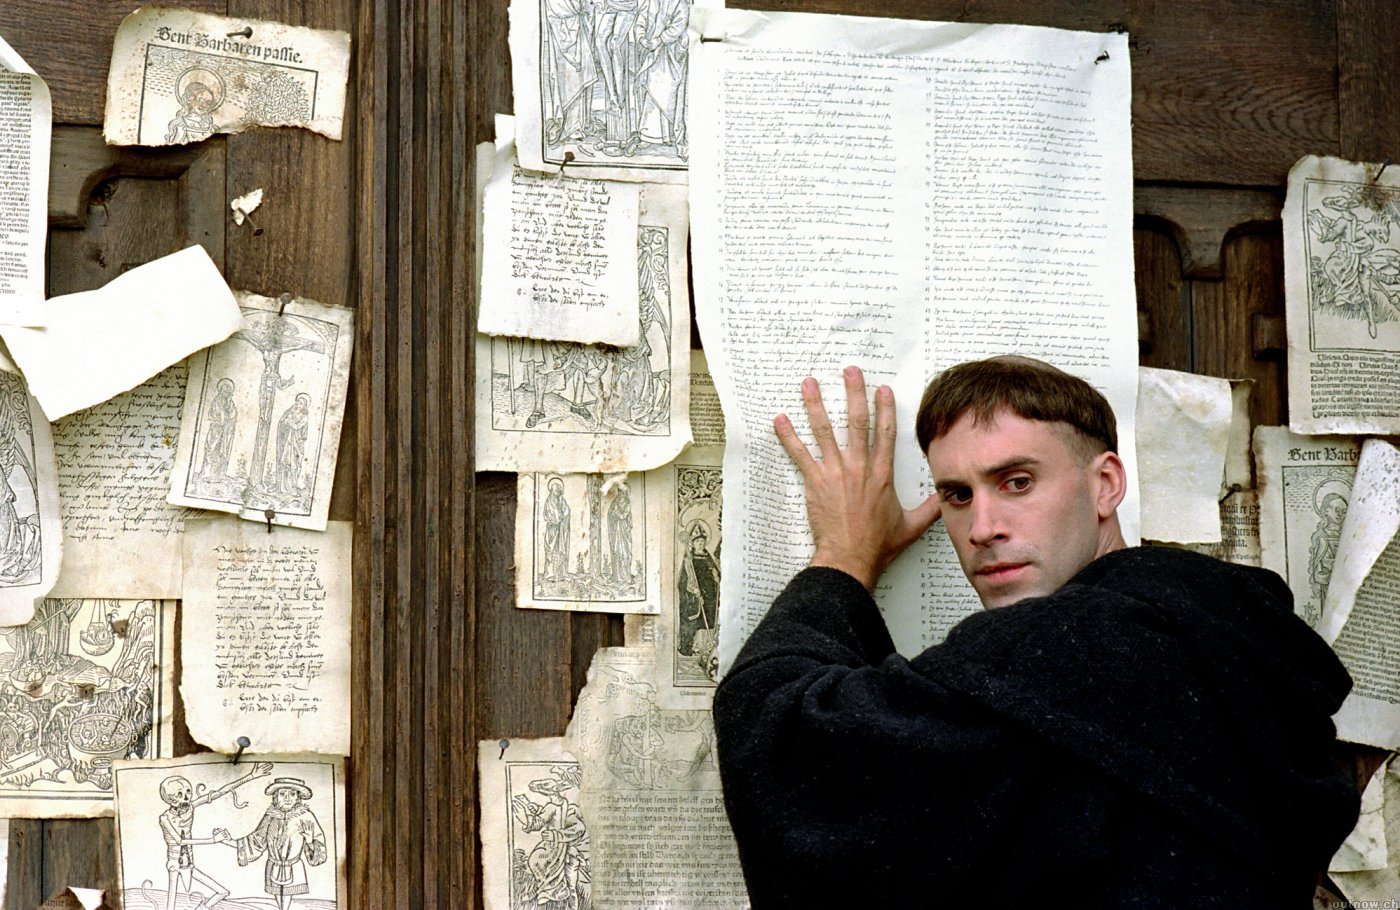 Decorating martin luther church door photos : Kabinettskriege: Martin Luther, the Protestant Reformation, and ...